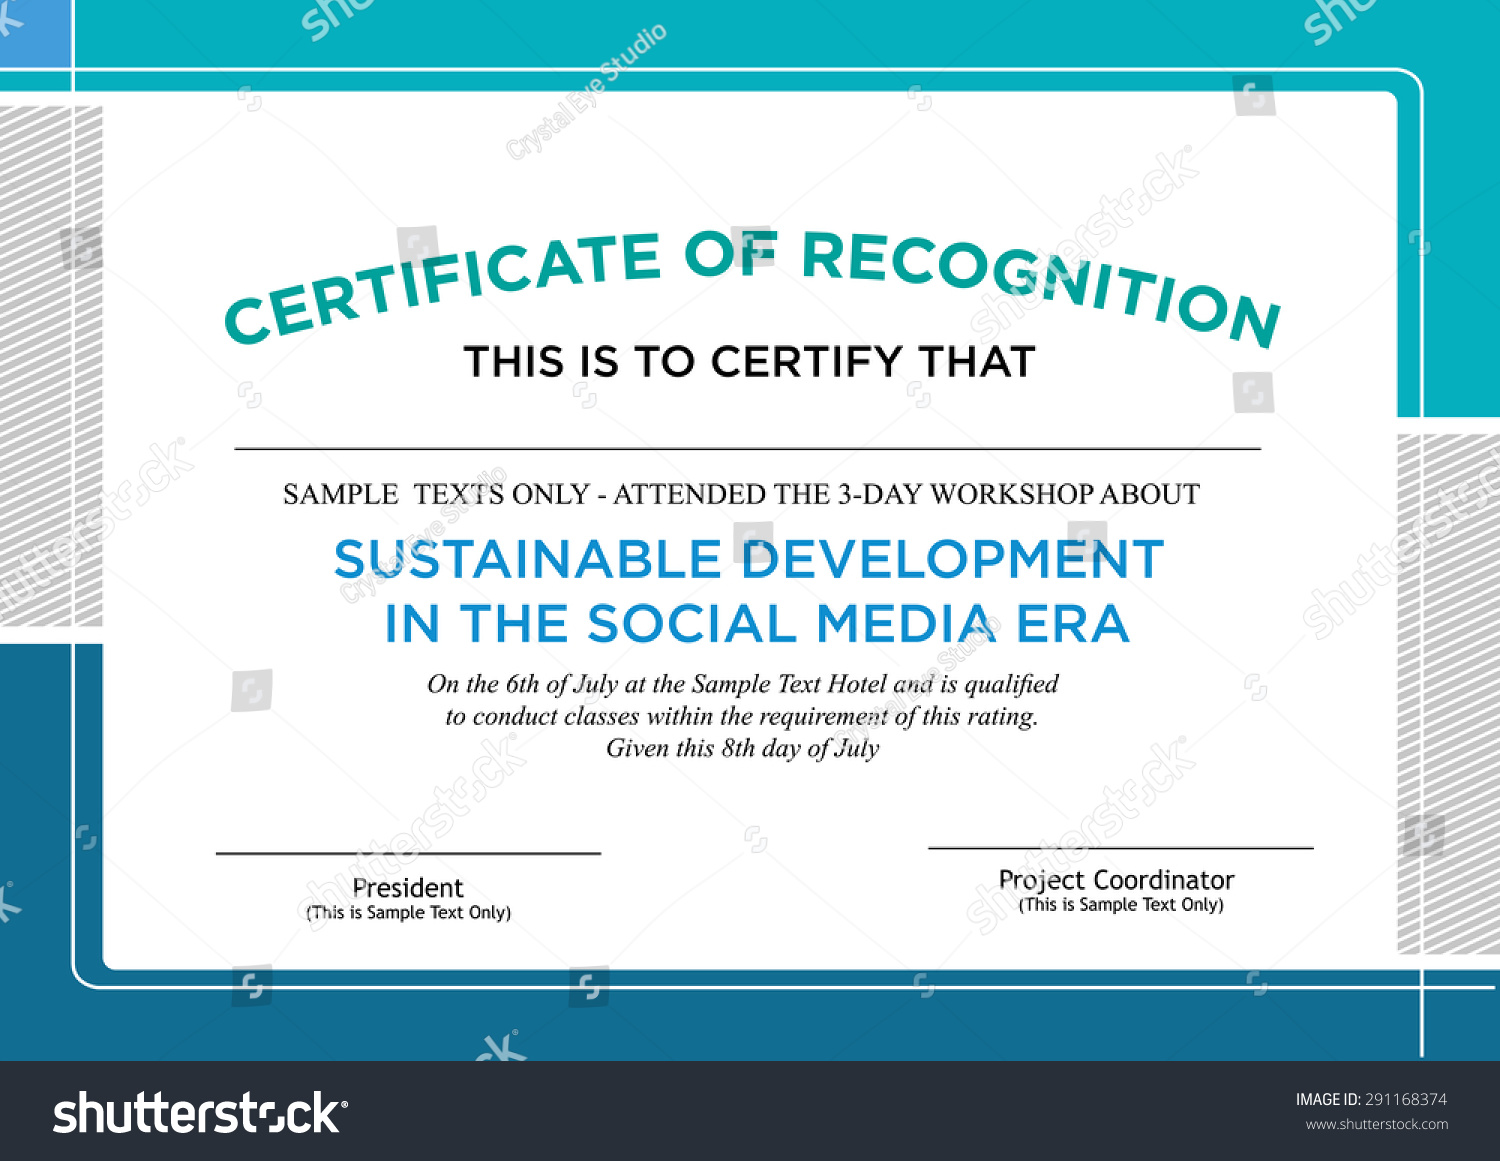 Sample of certification of recognition kardasklmphotography sample of certification of recognition yadclub Choice Image